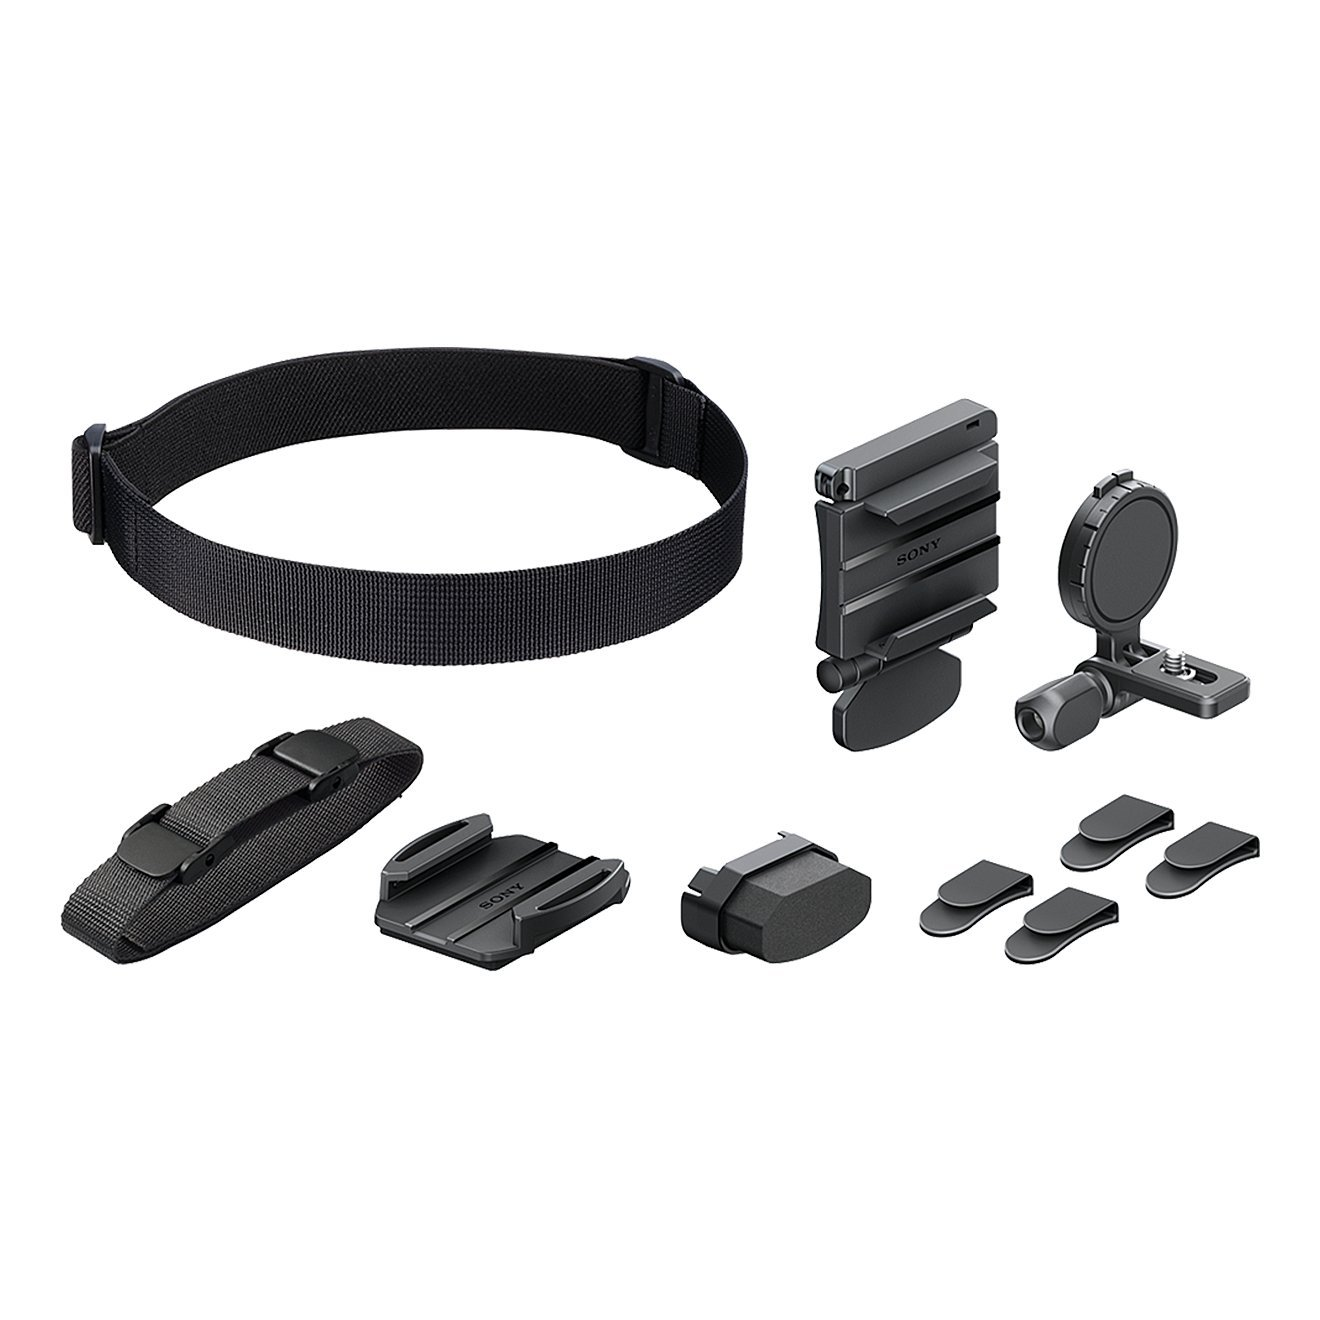 Sony Universal Headband Mount for Sony Action CameraCustomer review